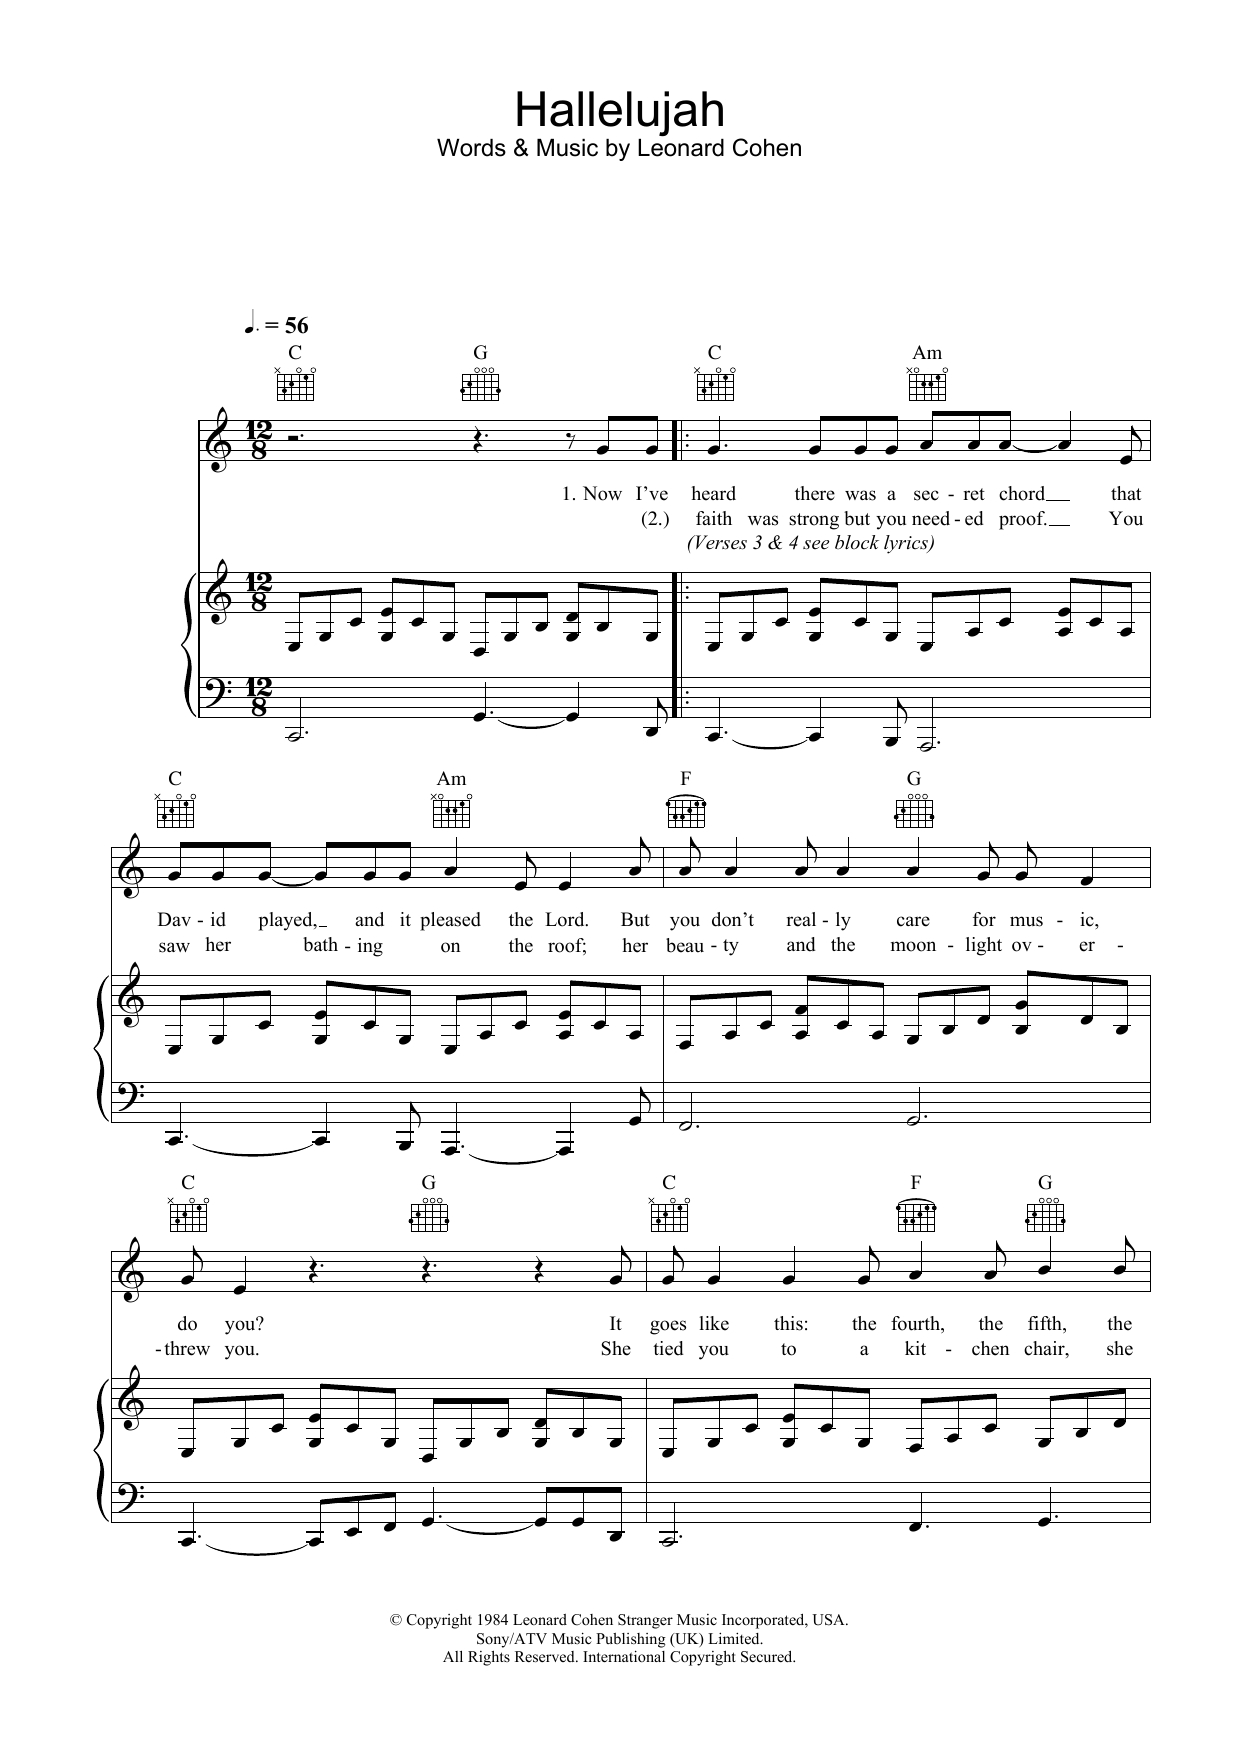 Hallelujah Sheet Musicleonard Cohen For Klavier/keyboard - Free Printable Piano Sheet Music For Hallelujah By Leonard Cohen